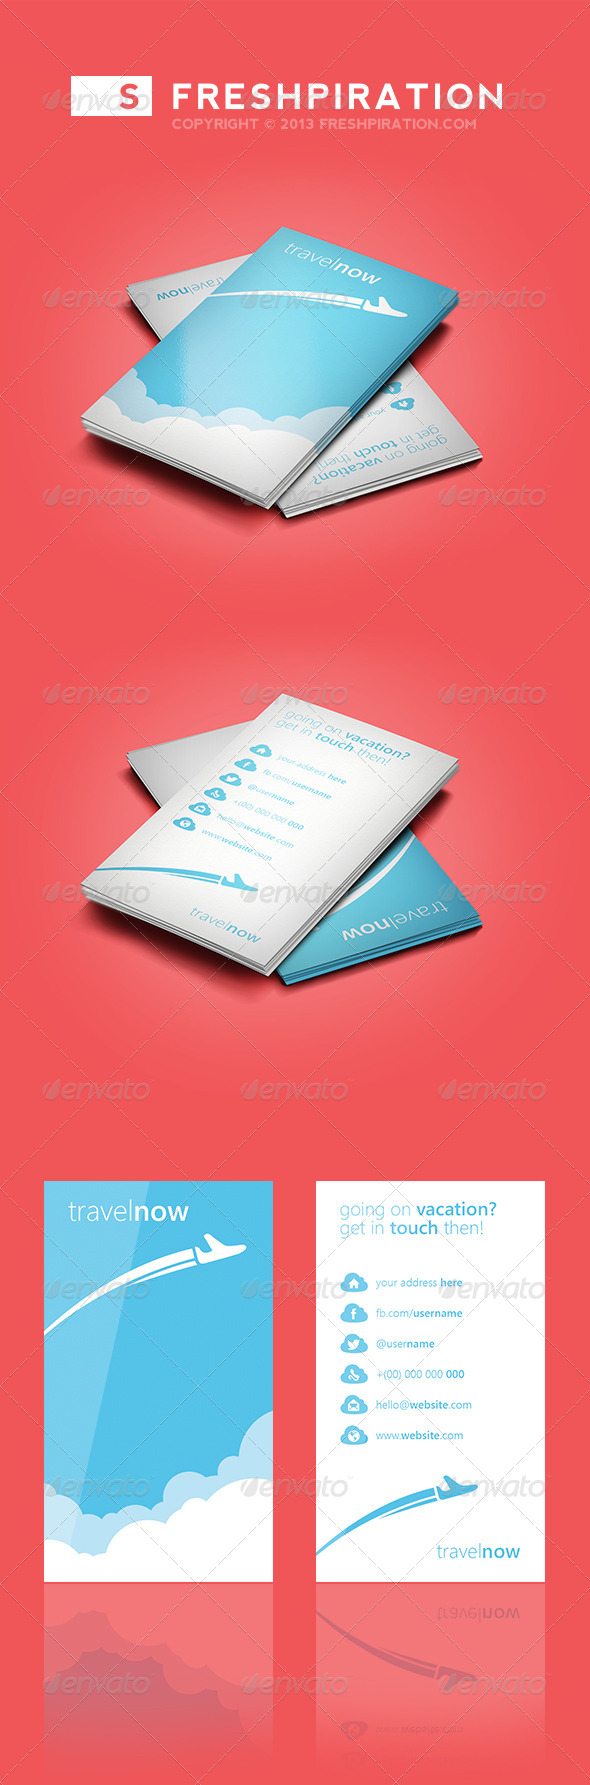 Travel Agency Business Card - Creative Business Cards